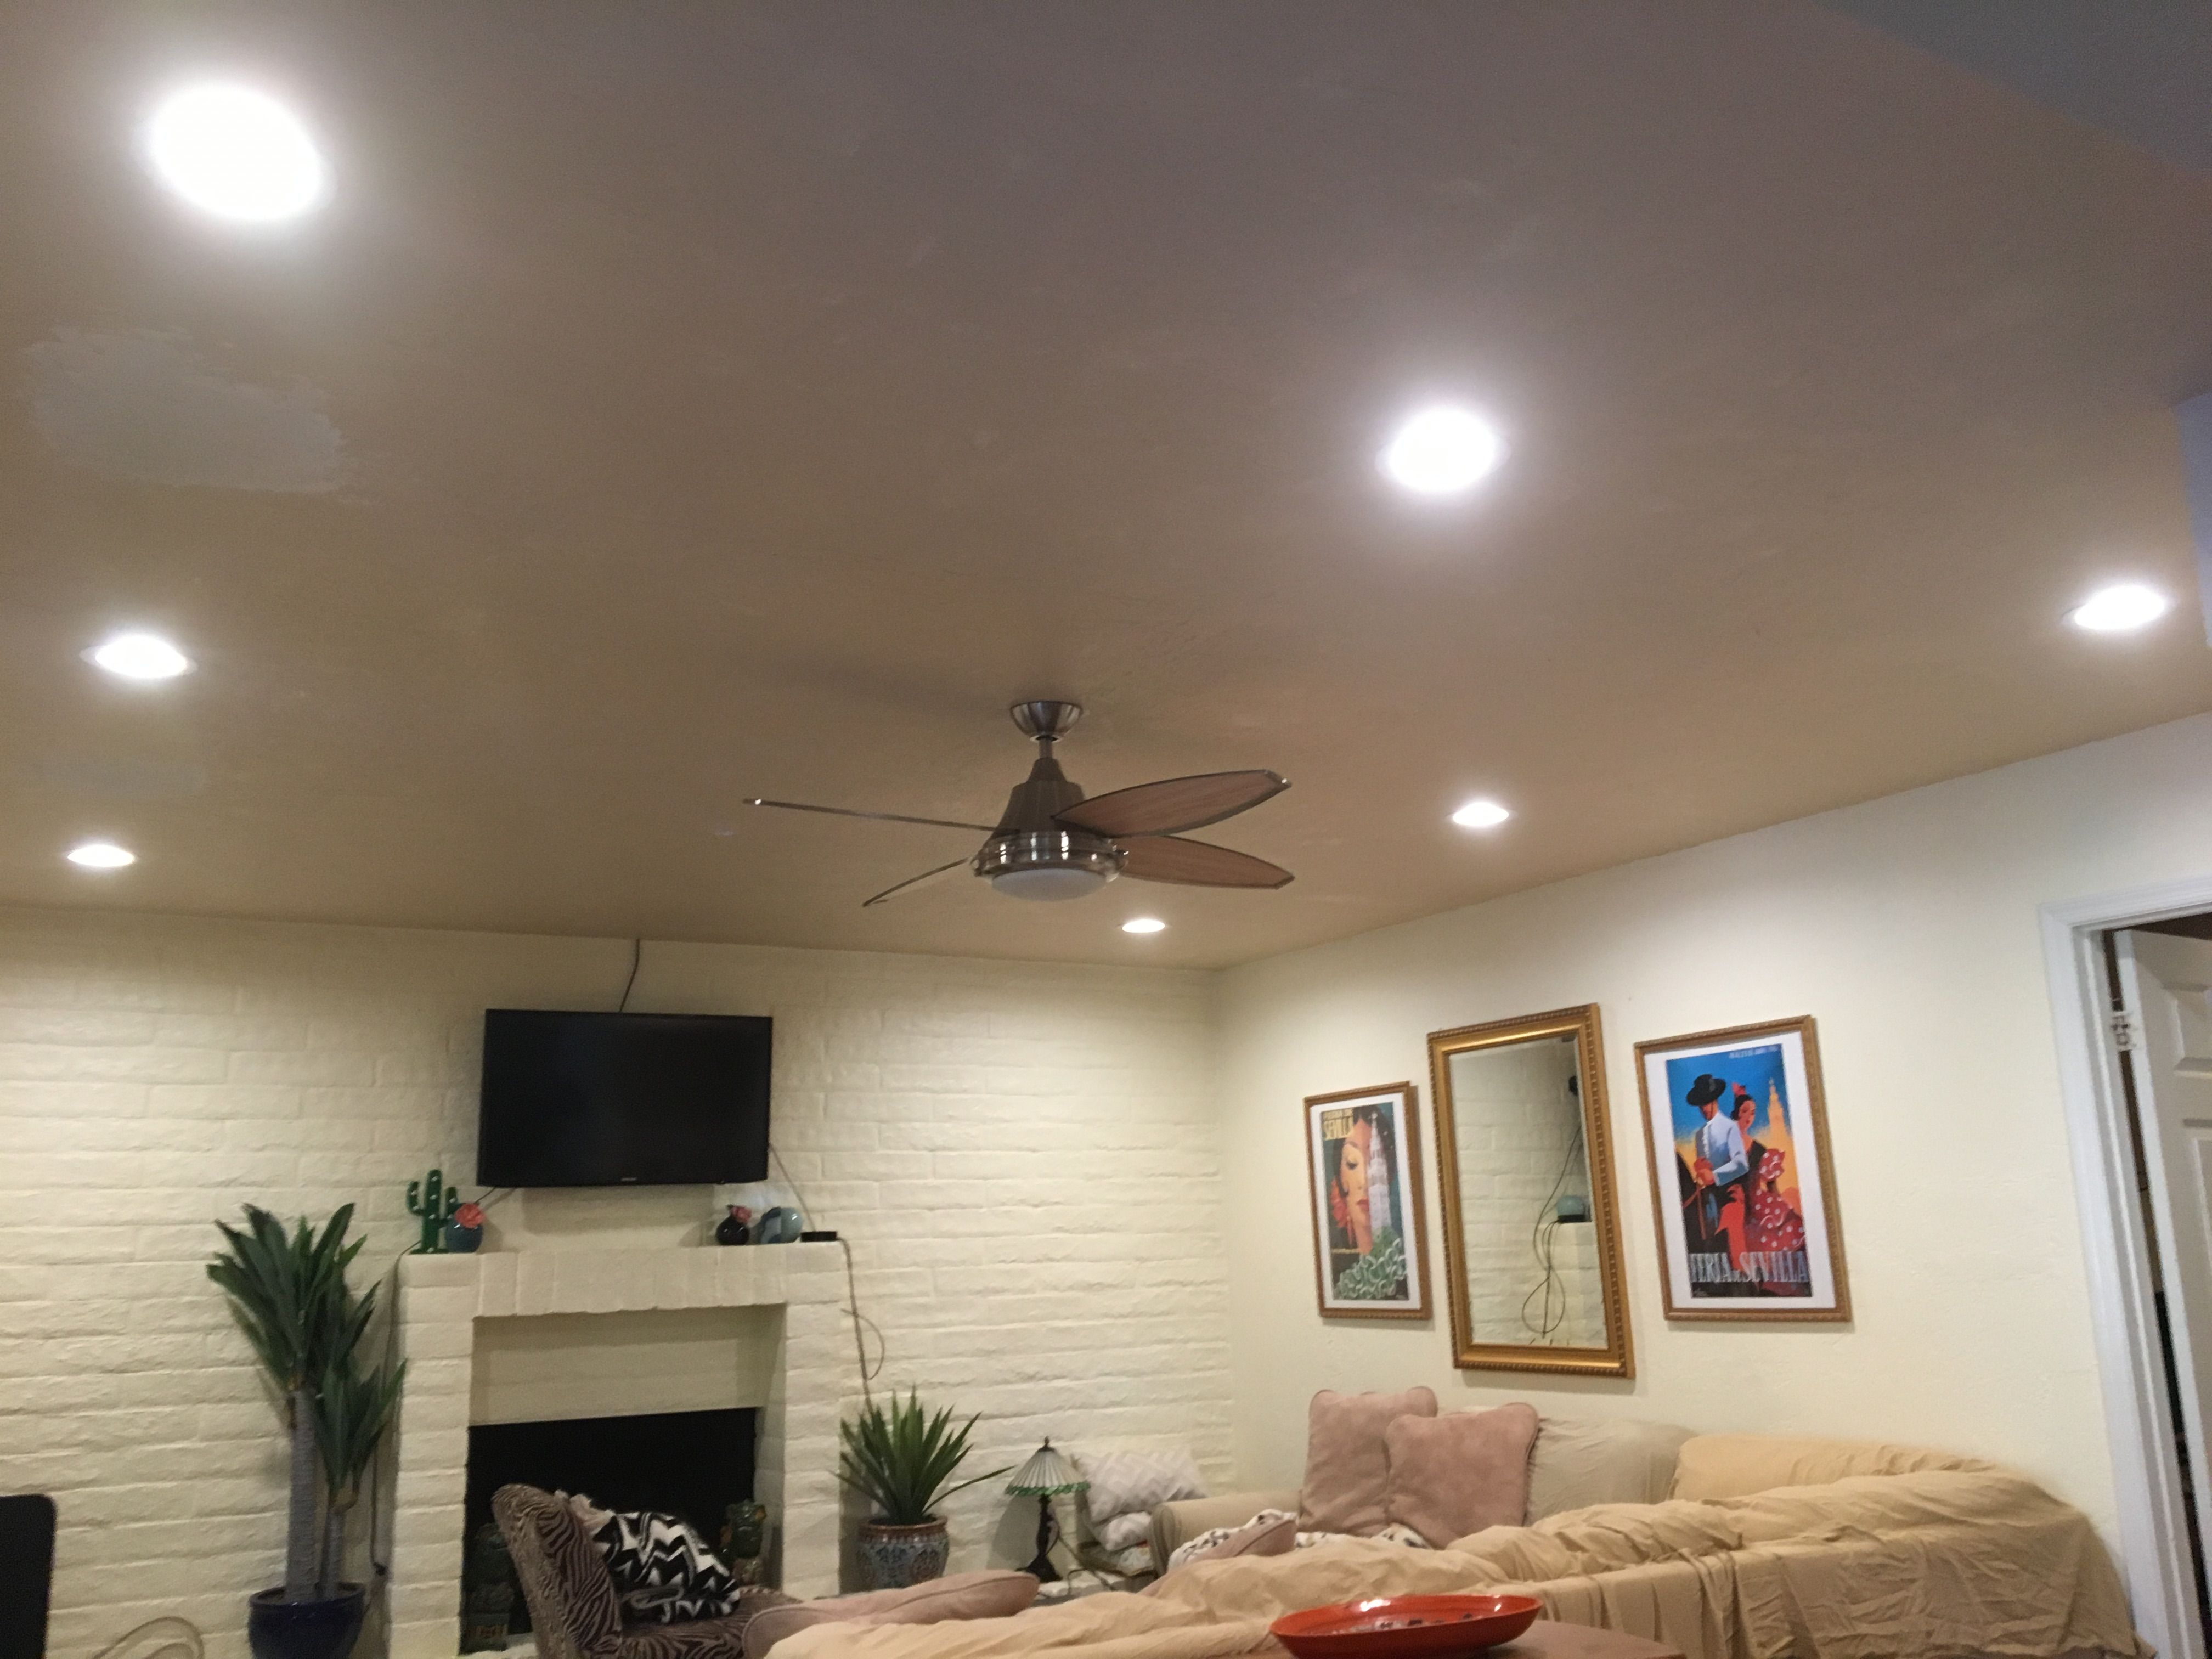 Installed 7 New Led Recessed Lights With Flat Roof New Switch And Wifi Dimmer Wit Recessed Lighting Living Room Installing Recessed Lighting Recessed Lighting